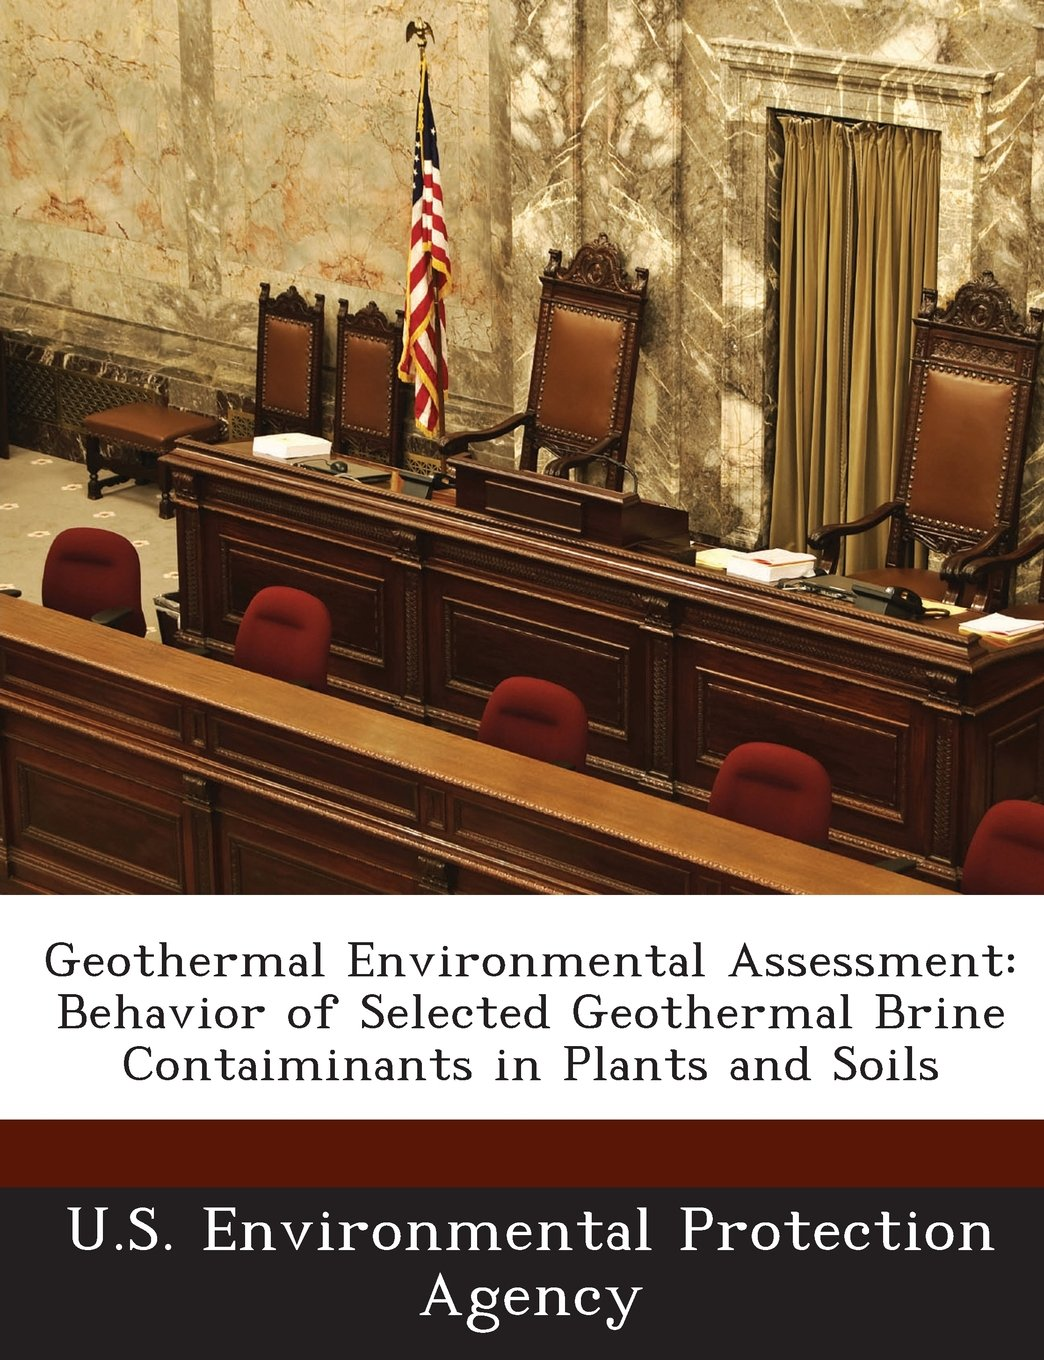 Download Geothermal Environmental Assessment: Behavior of Selected Geothermal Brine Contaiminants in Plants and Soils ebook